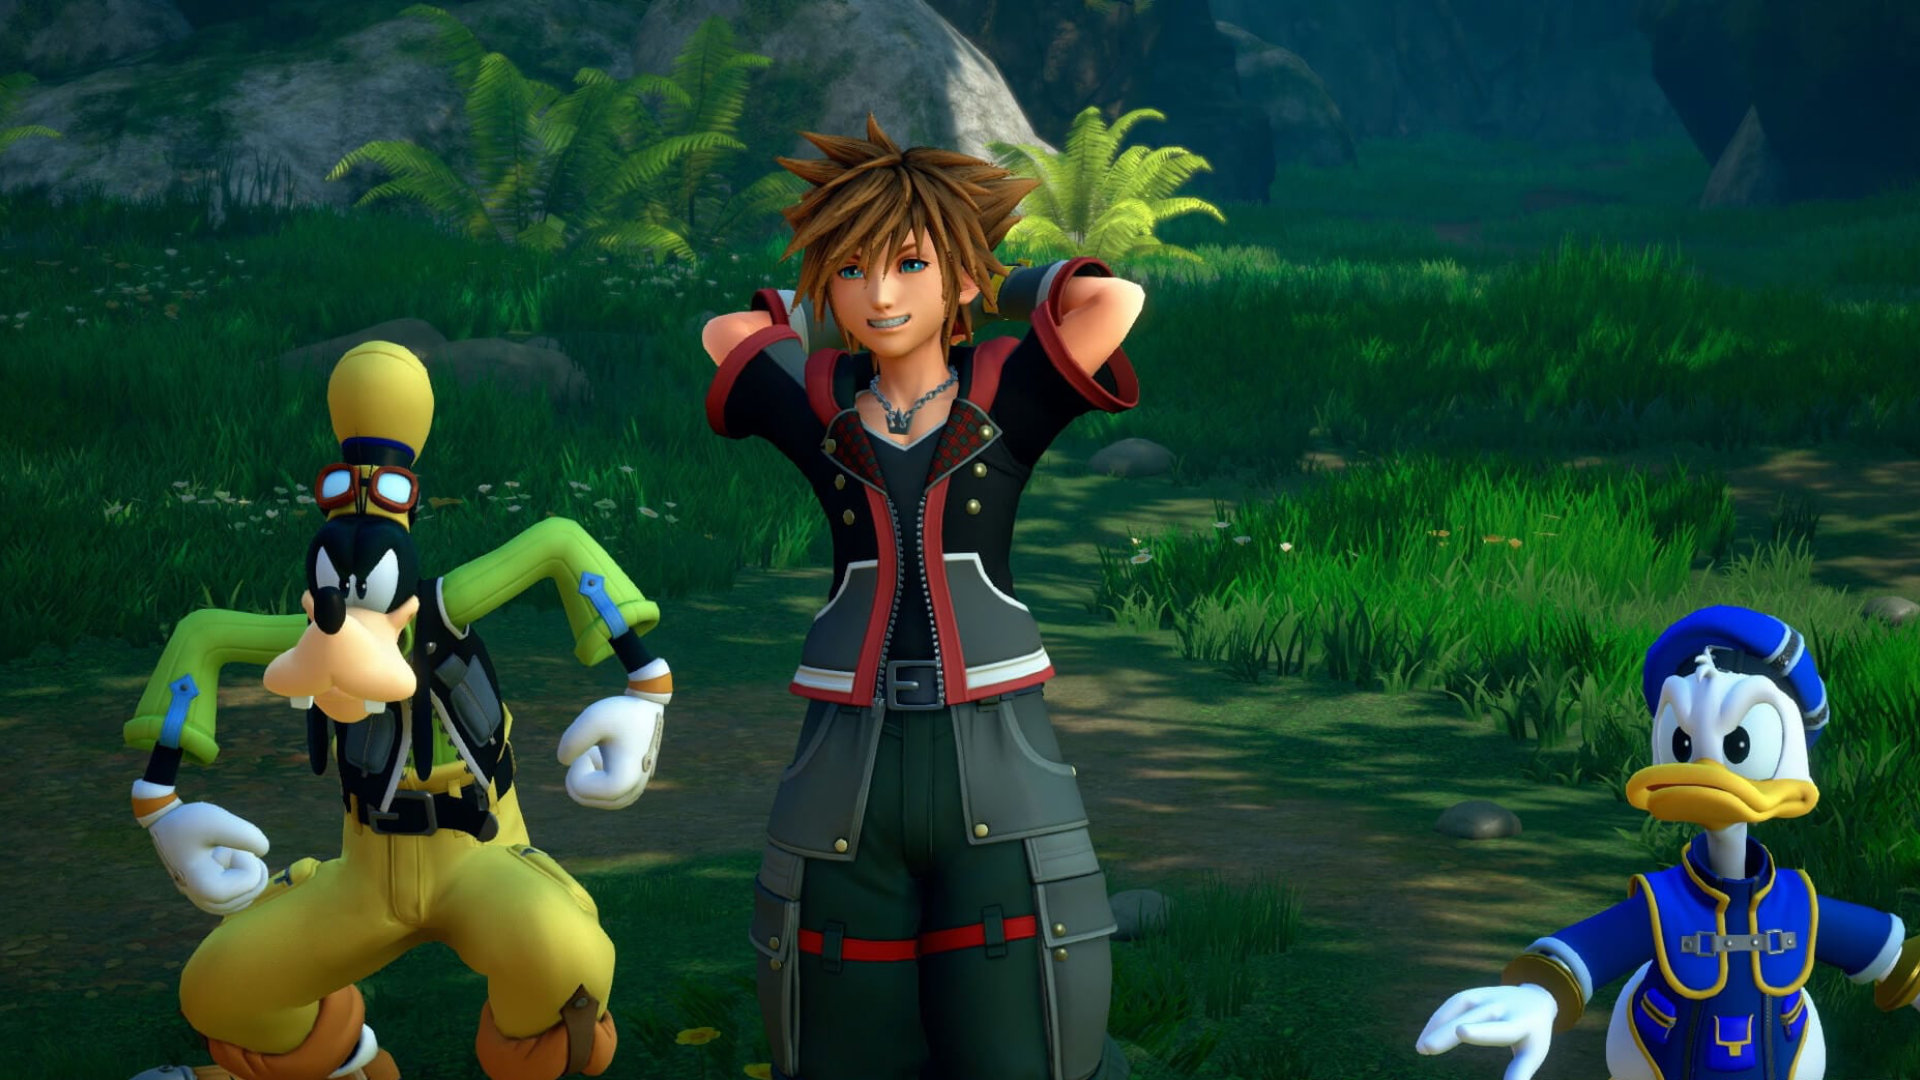 Kingdom Hearts PC system requirements might be low enough to see Goofy in 4K